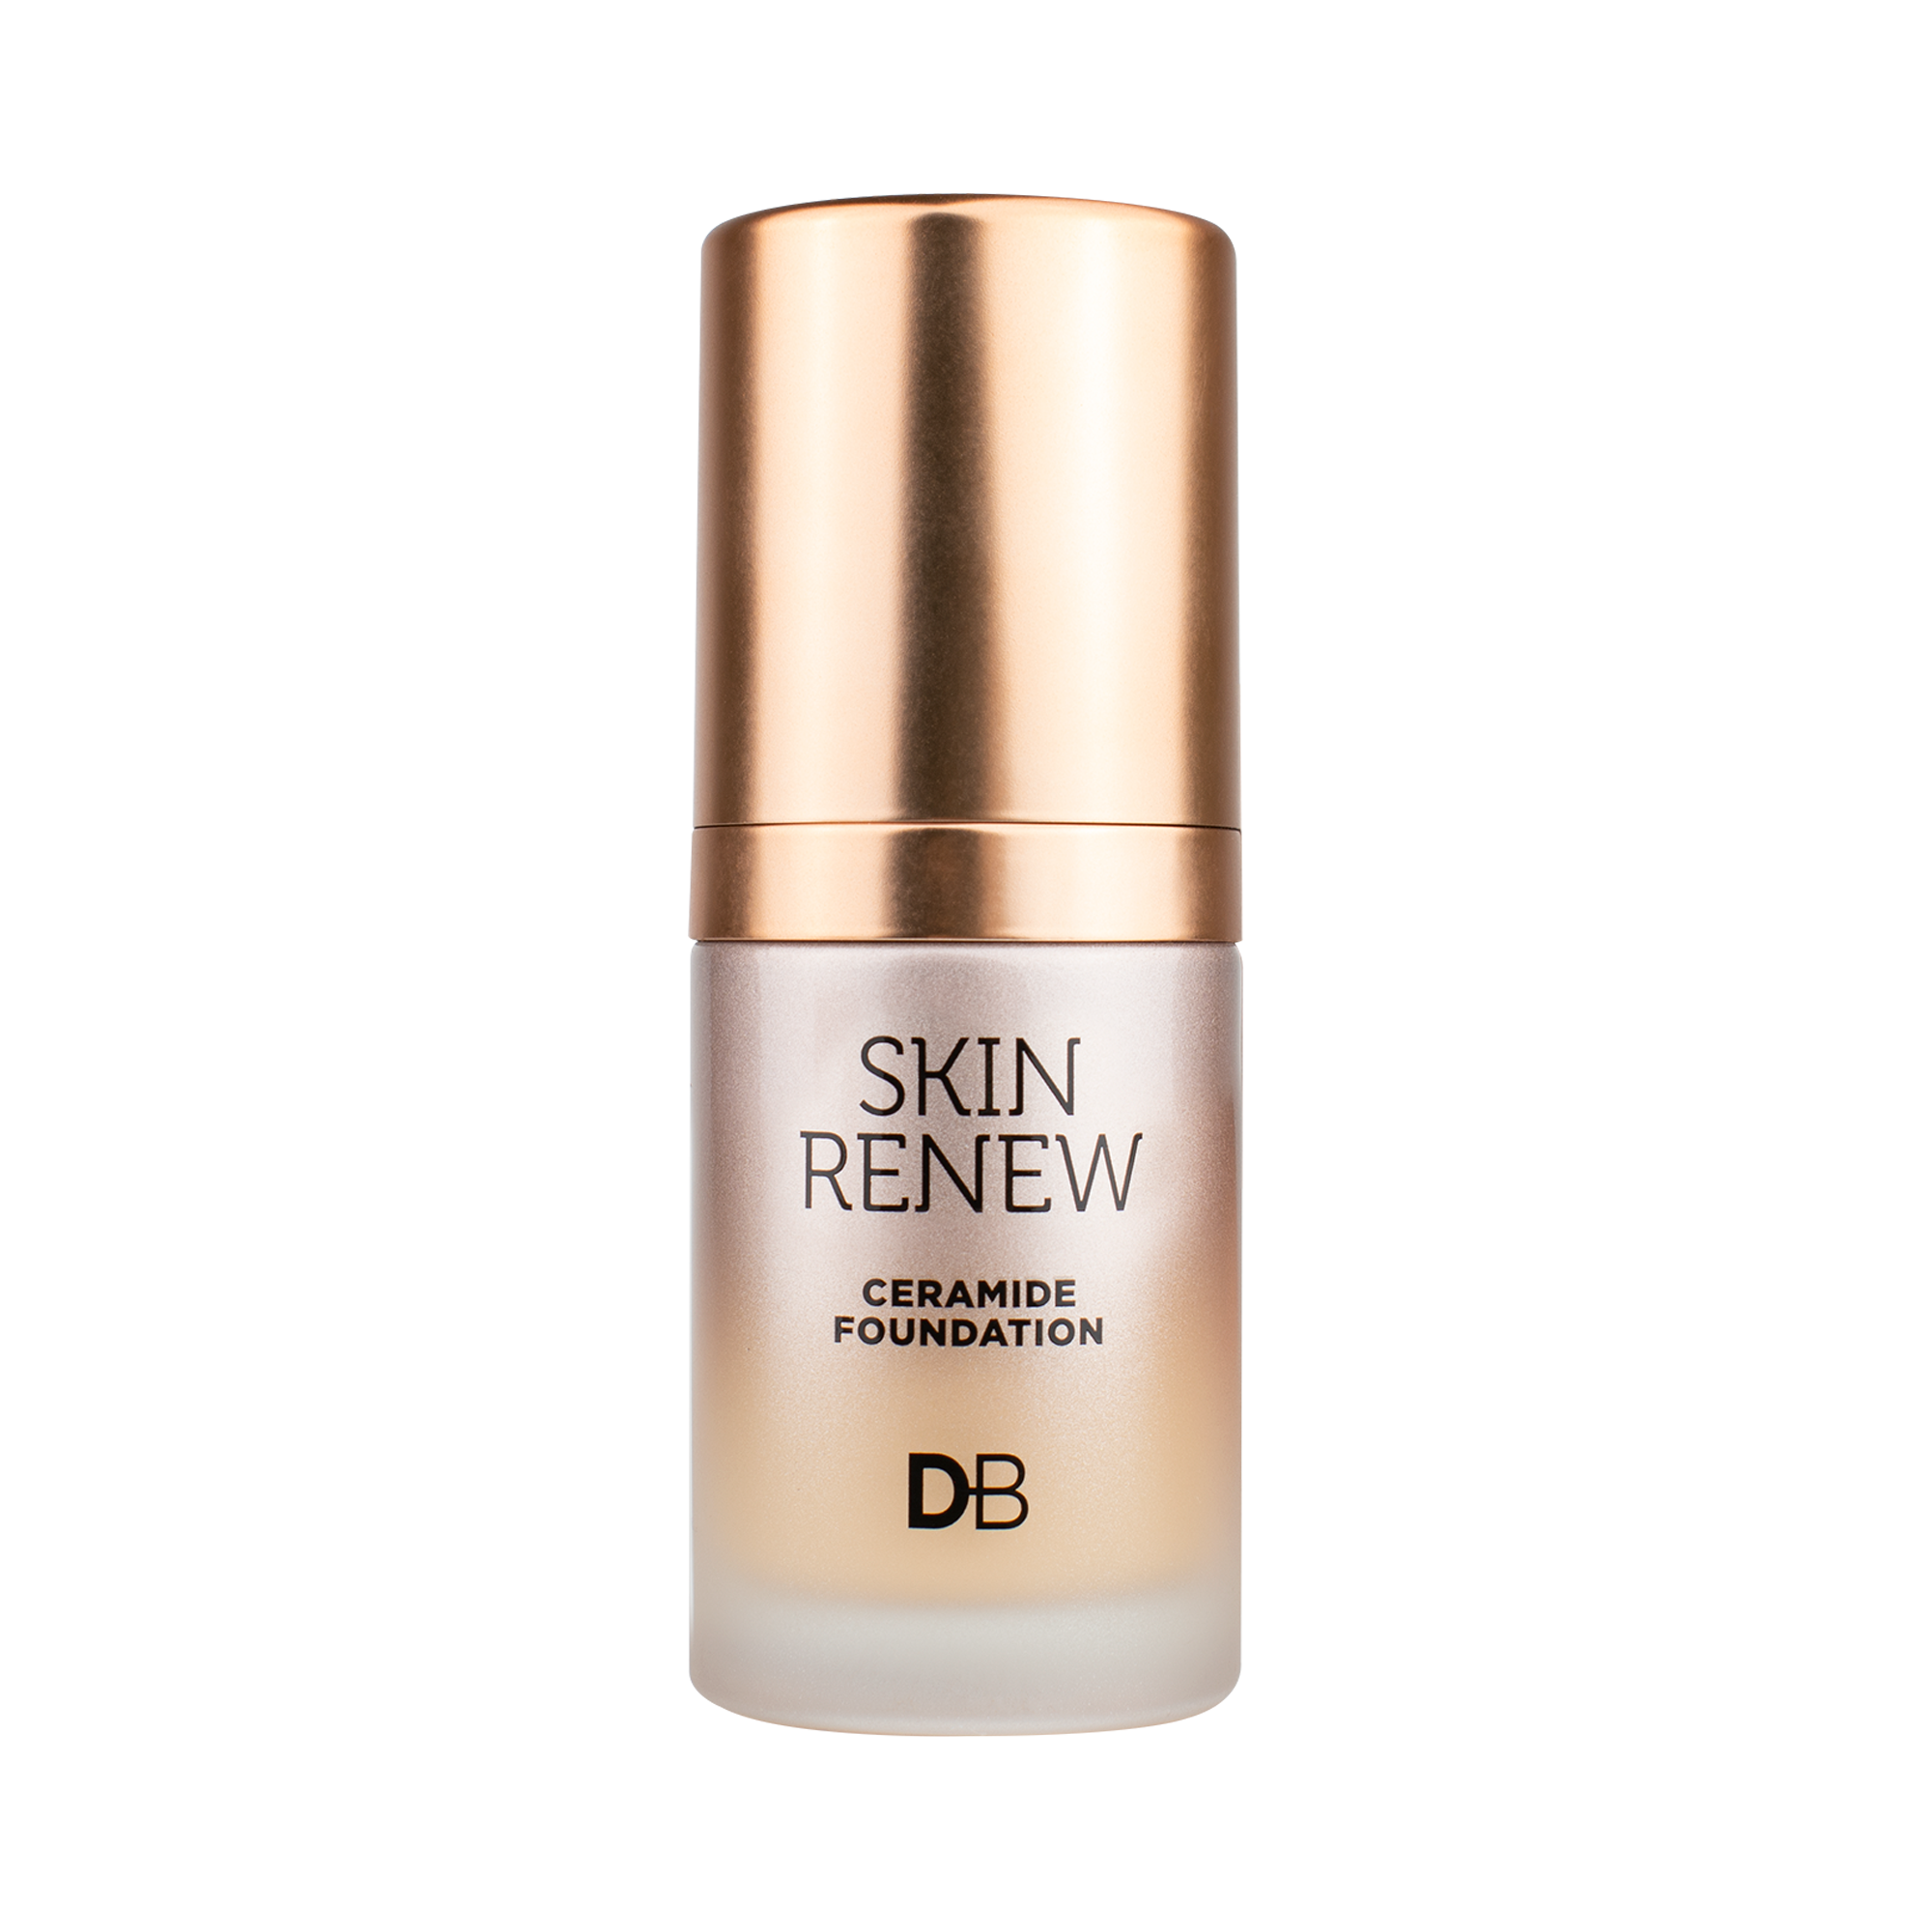 Skin Renew Ceramide Foundation (True Beige)